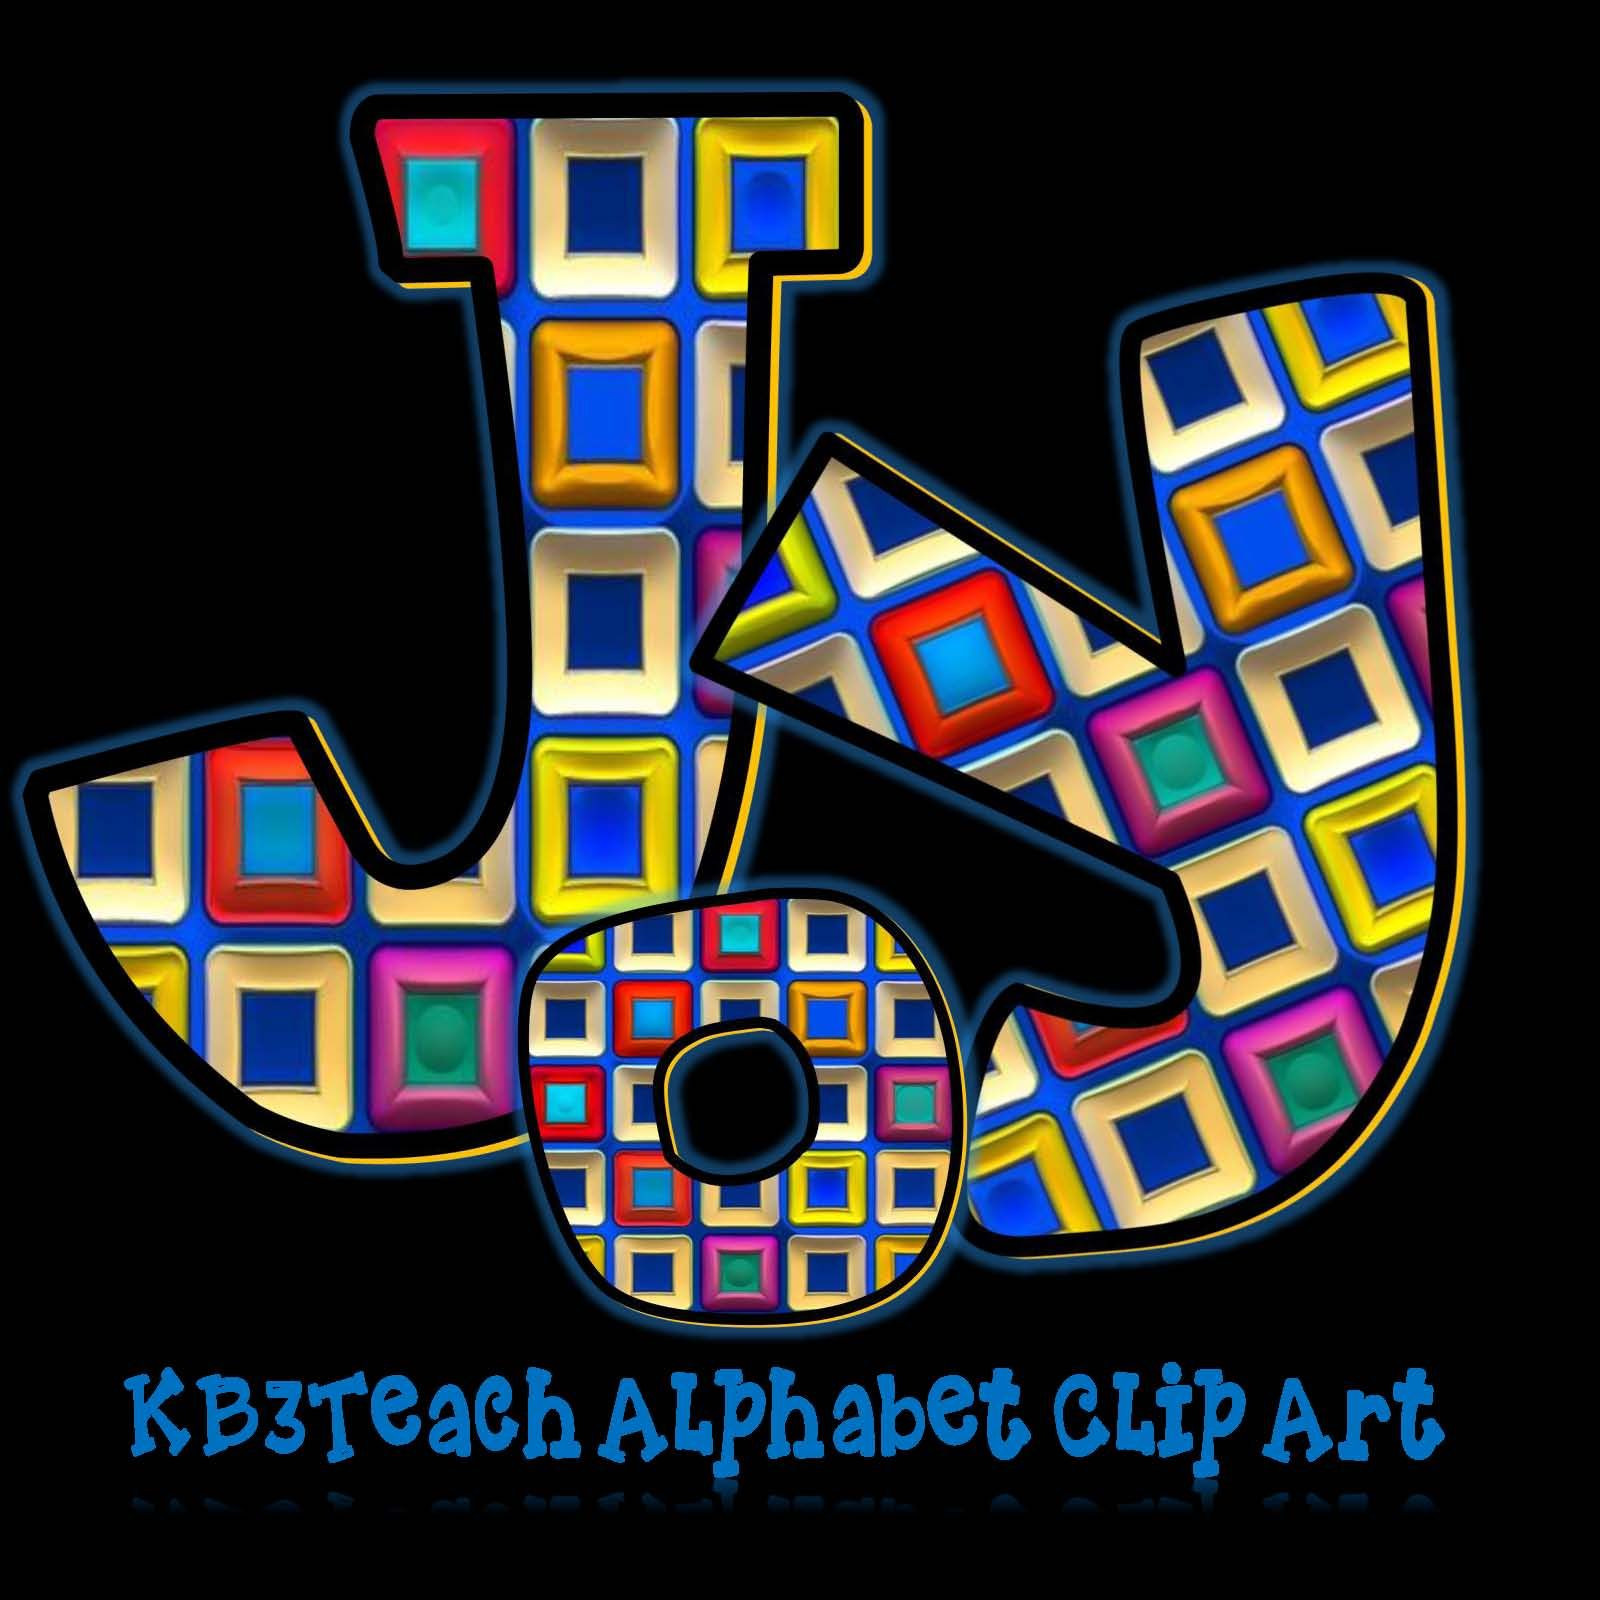 Alphabet Letters Clipart Abstract Designs Uppercase